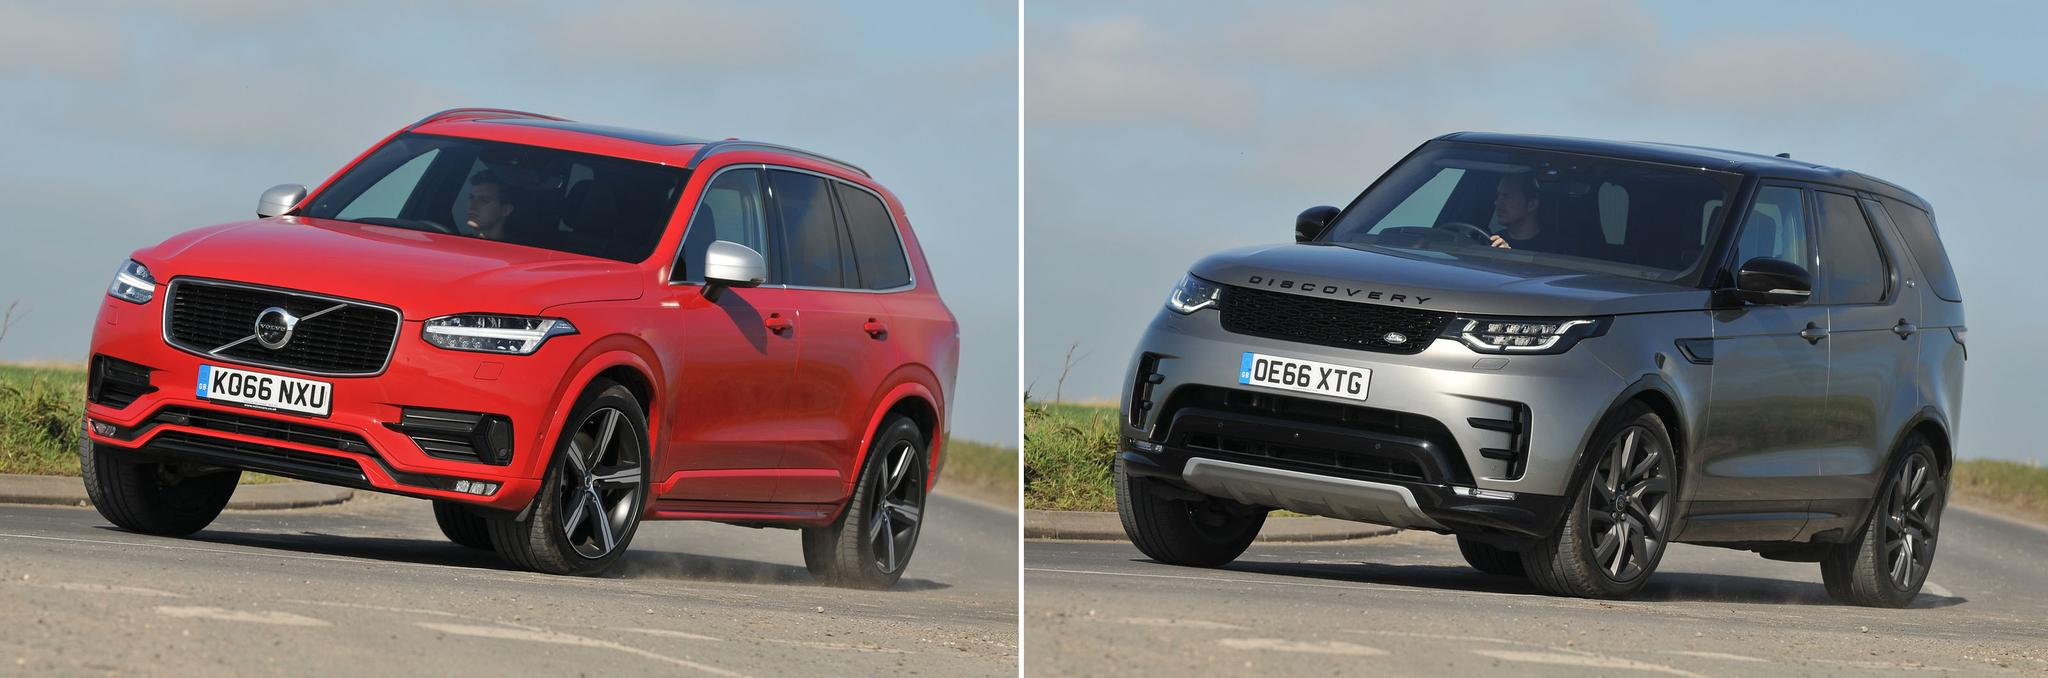 New Volvo XC90 vs used Land Rover Discovery: which is best?